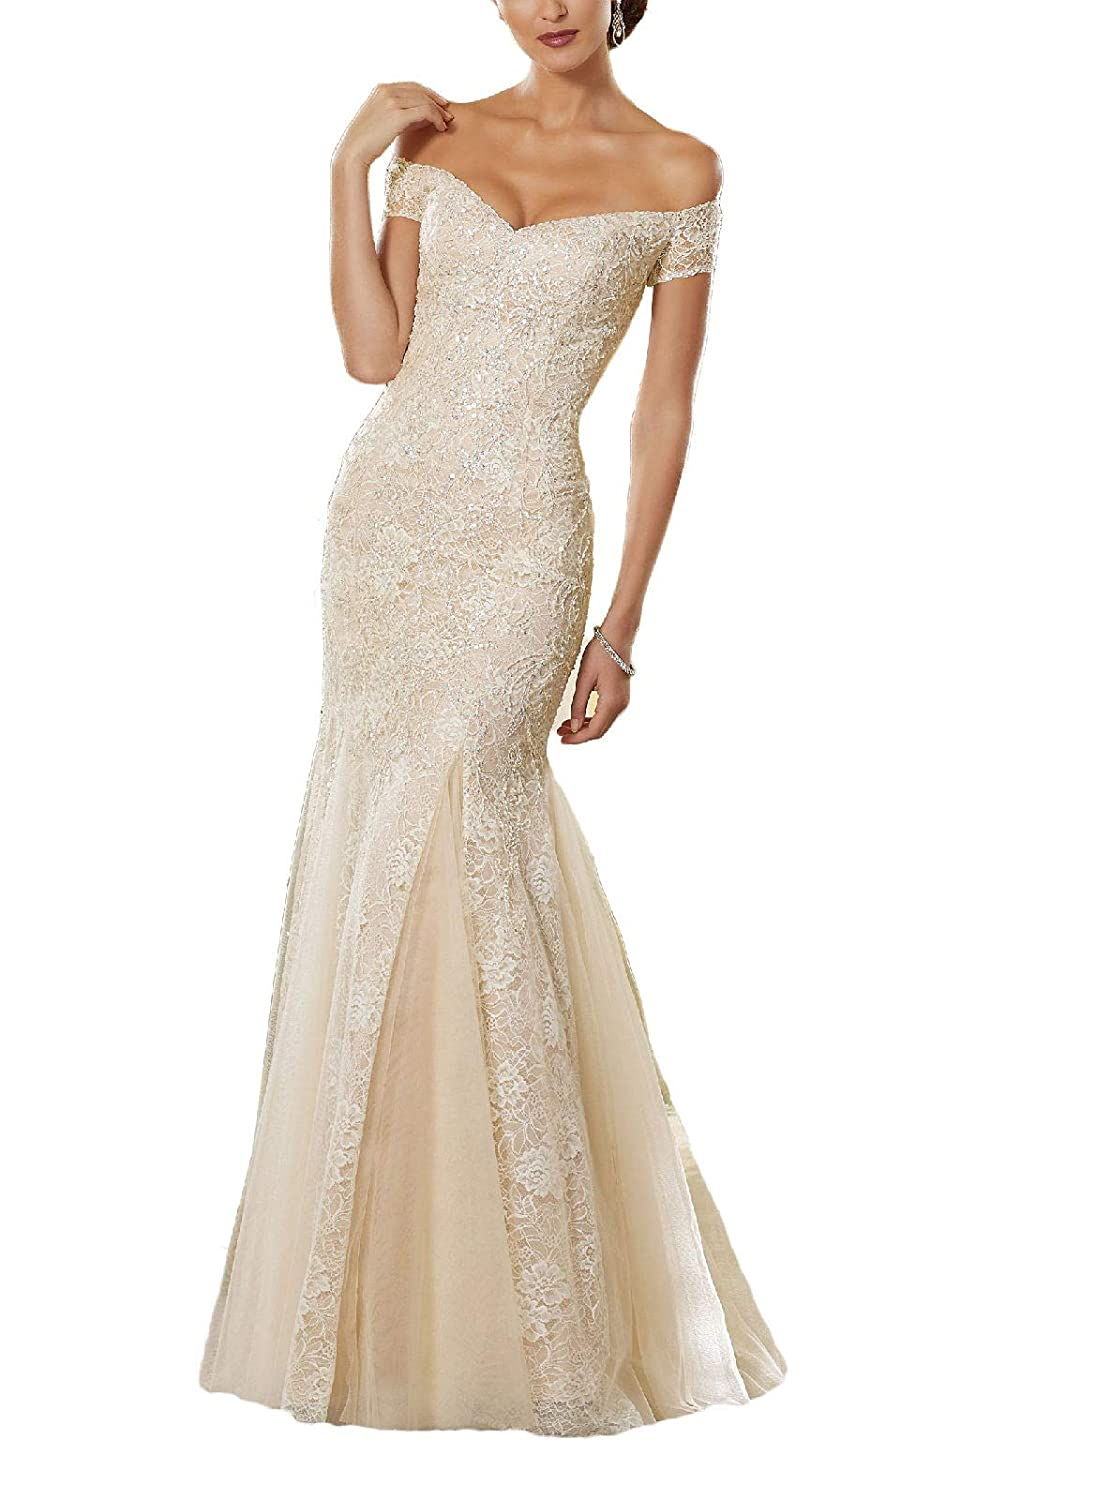 Champagne Yisha Bello Women's Off The Shoulder Mermaid Crystal Beaded Prom Dress Long Lace Evening Formal Gowns